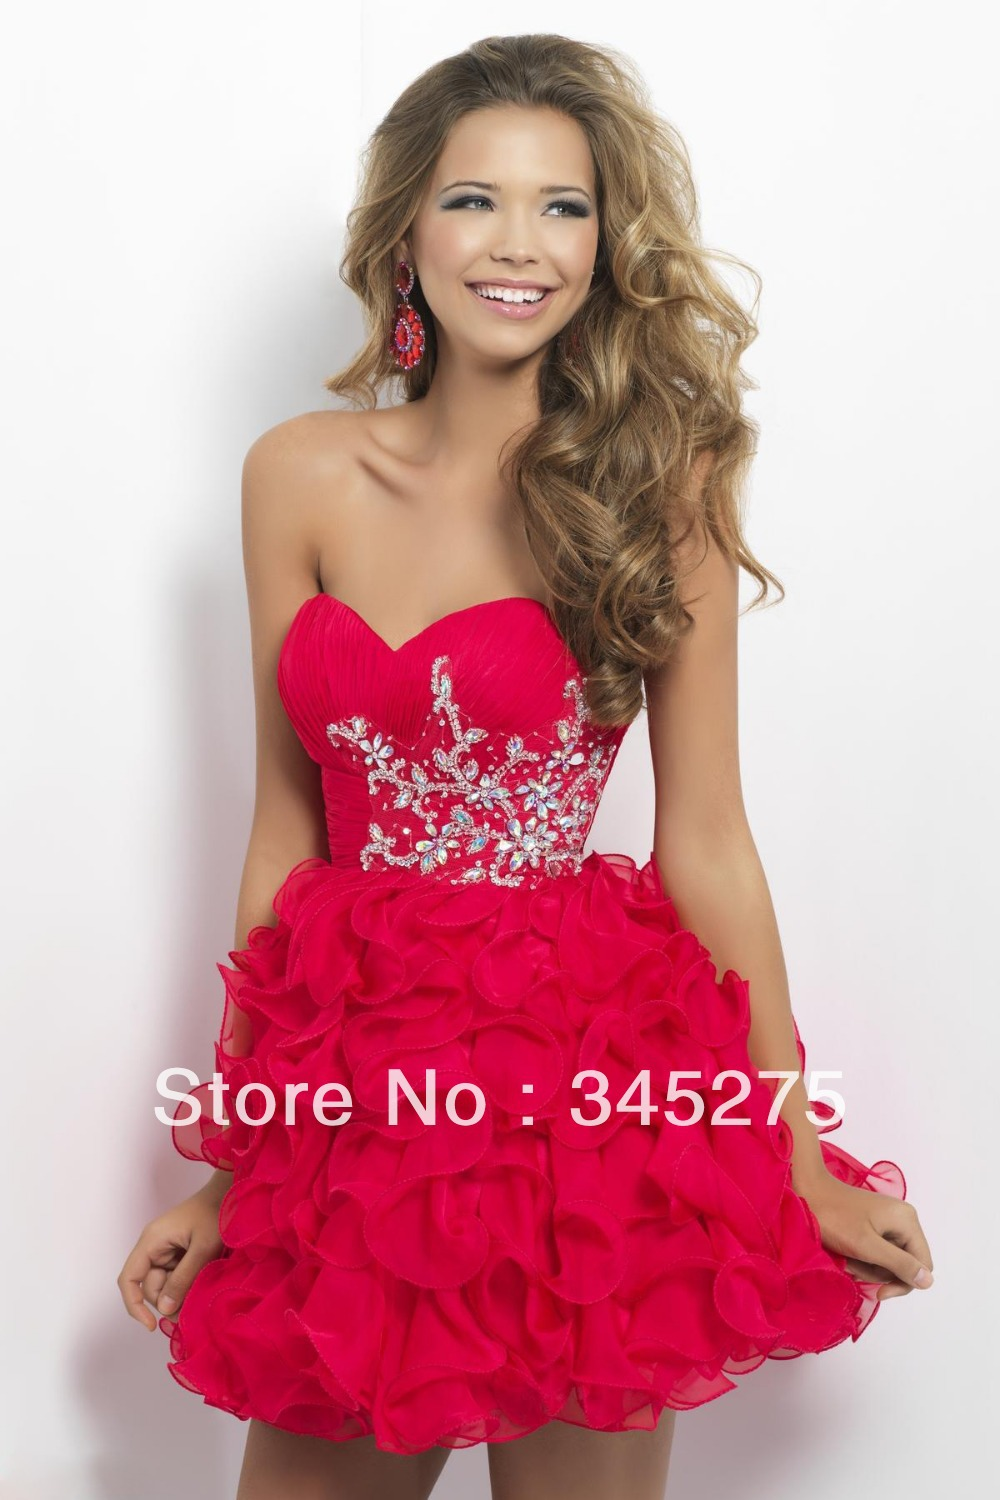 Compare Prices on Babydoll Homecoming Dresses- Online Shopping/Buy ...